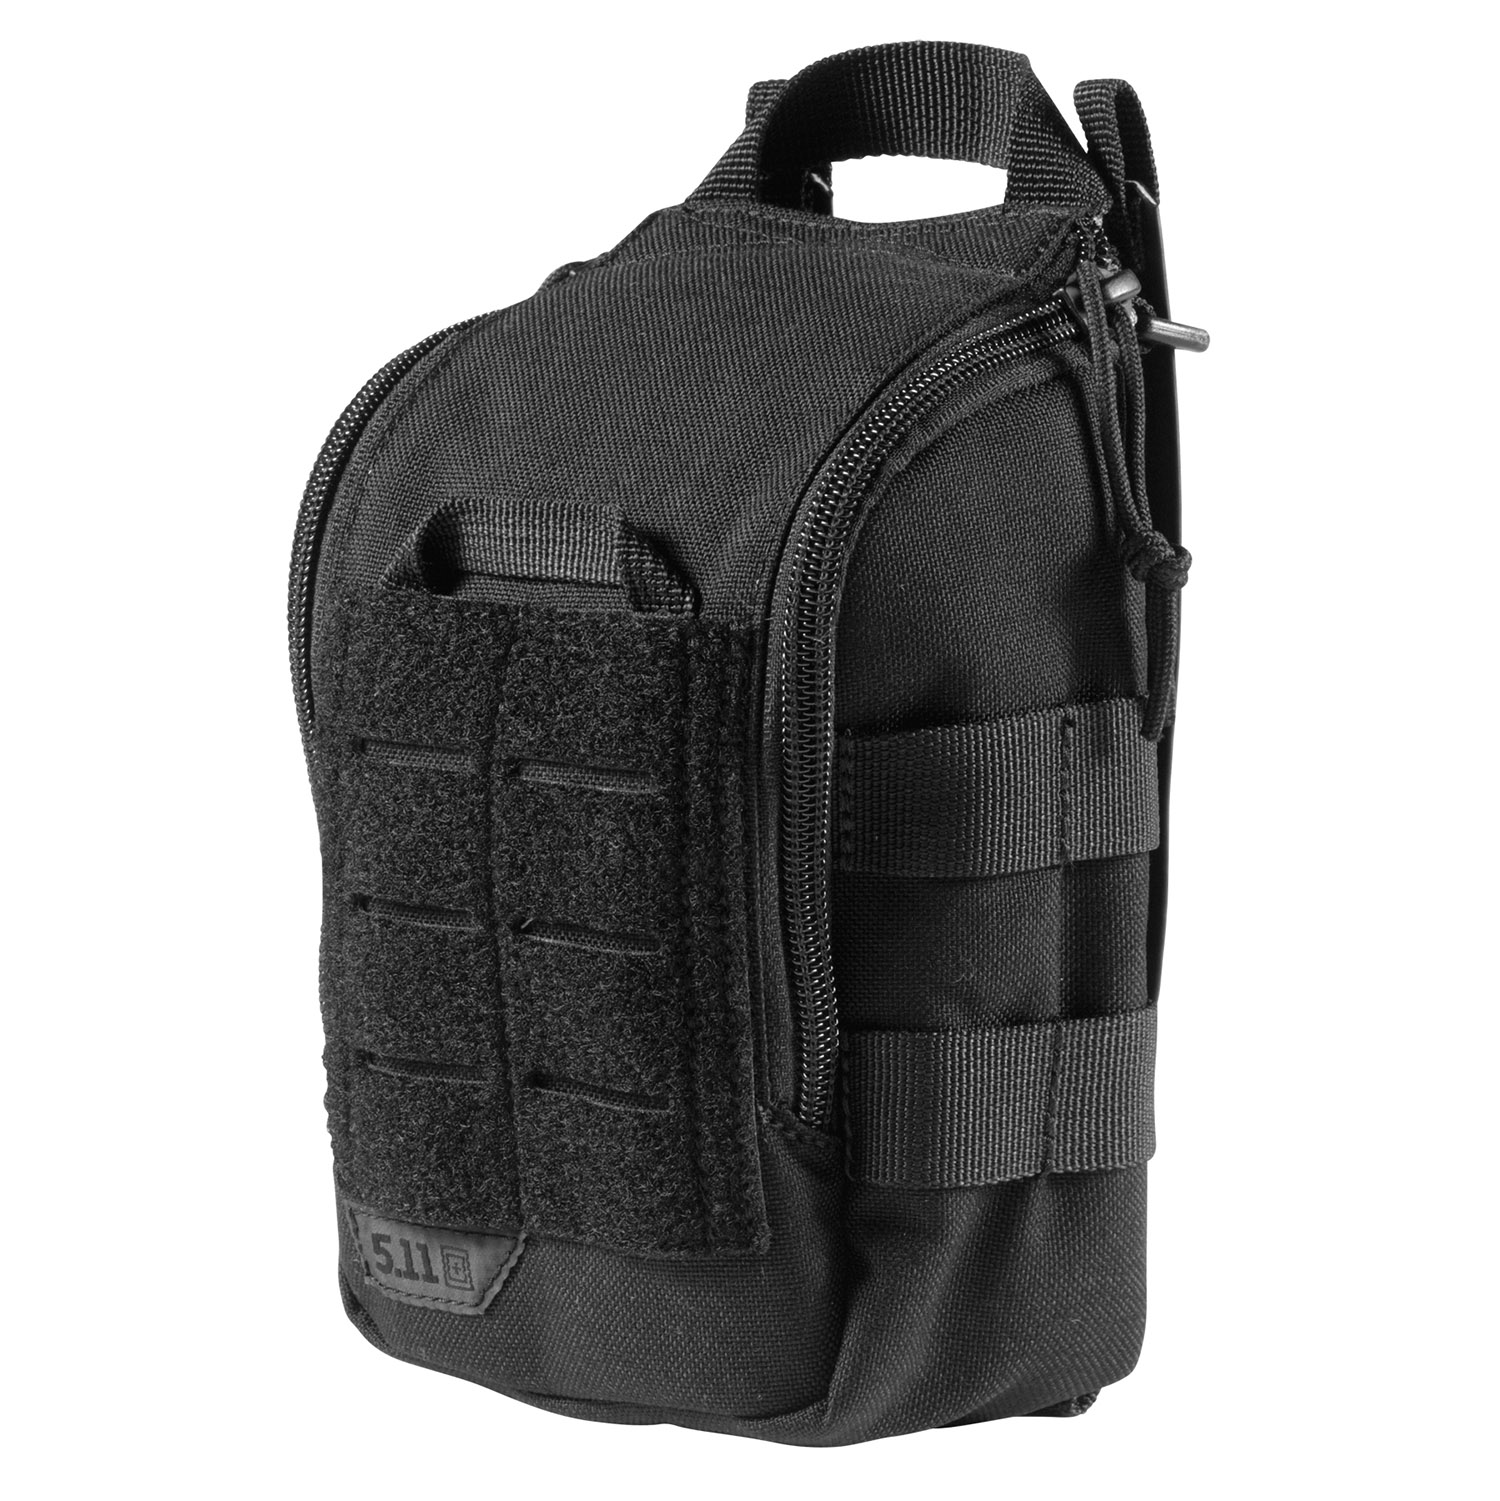 5.11 Tactical TacReady Headrest Pouch